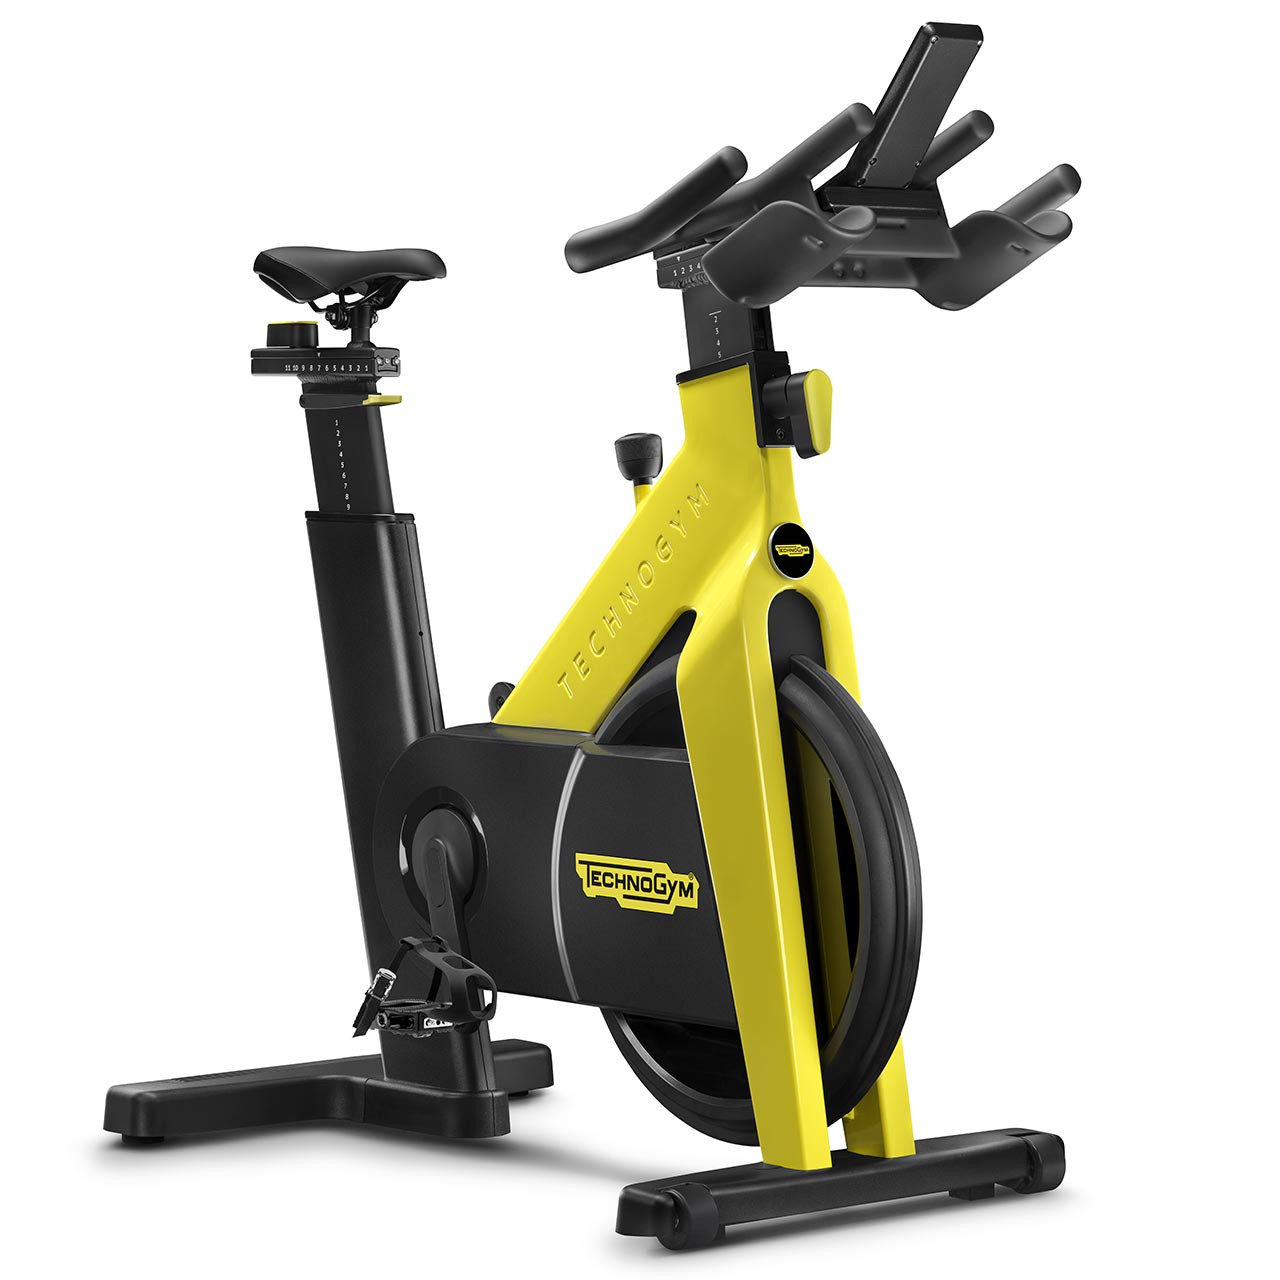 Group Cycle Connect -Technogym Group Cycle